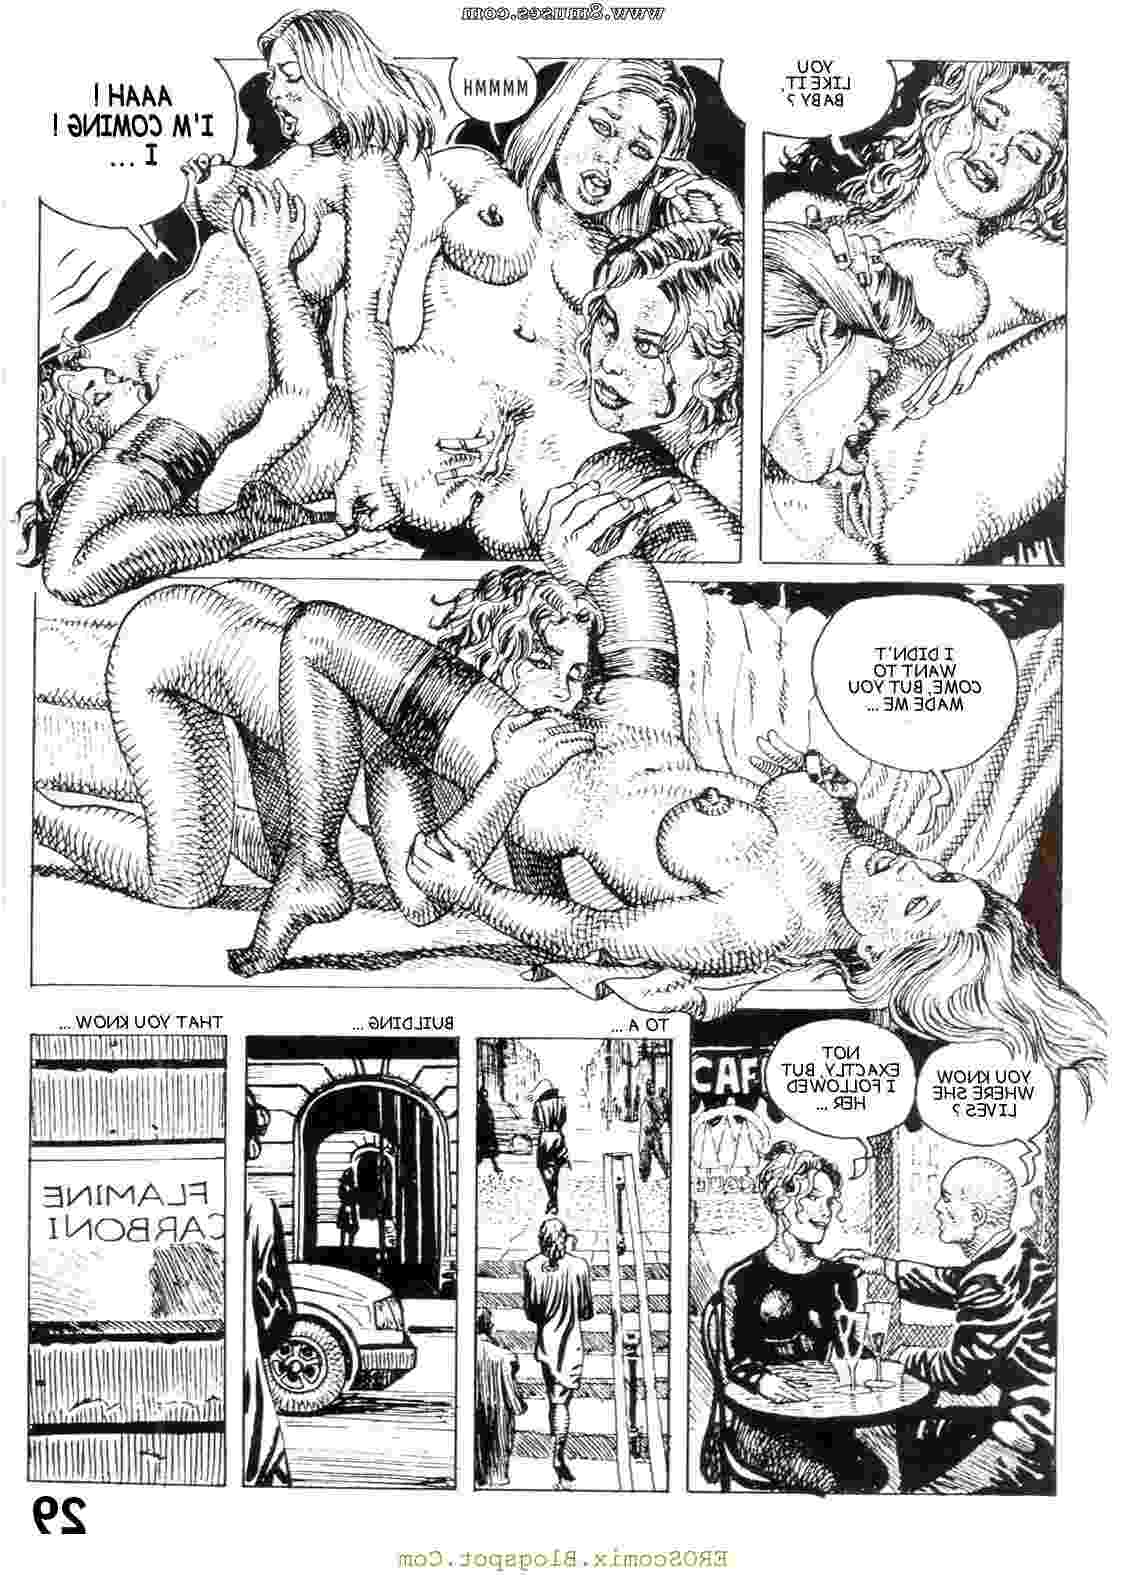 Bruno-Coq-Comics/Secret-Society Secret_Society__8muses_-_Sex_and_Porn_Comics_30.jpg